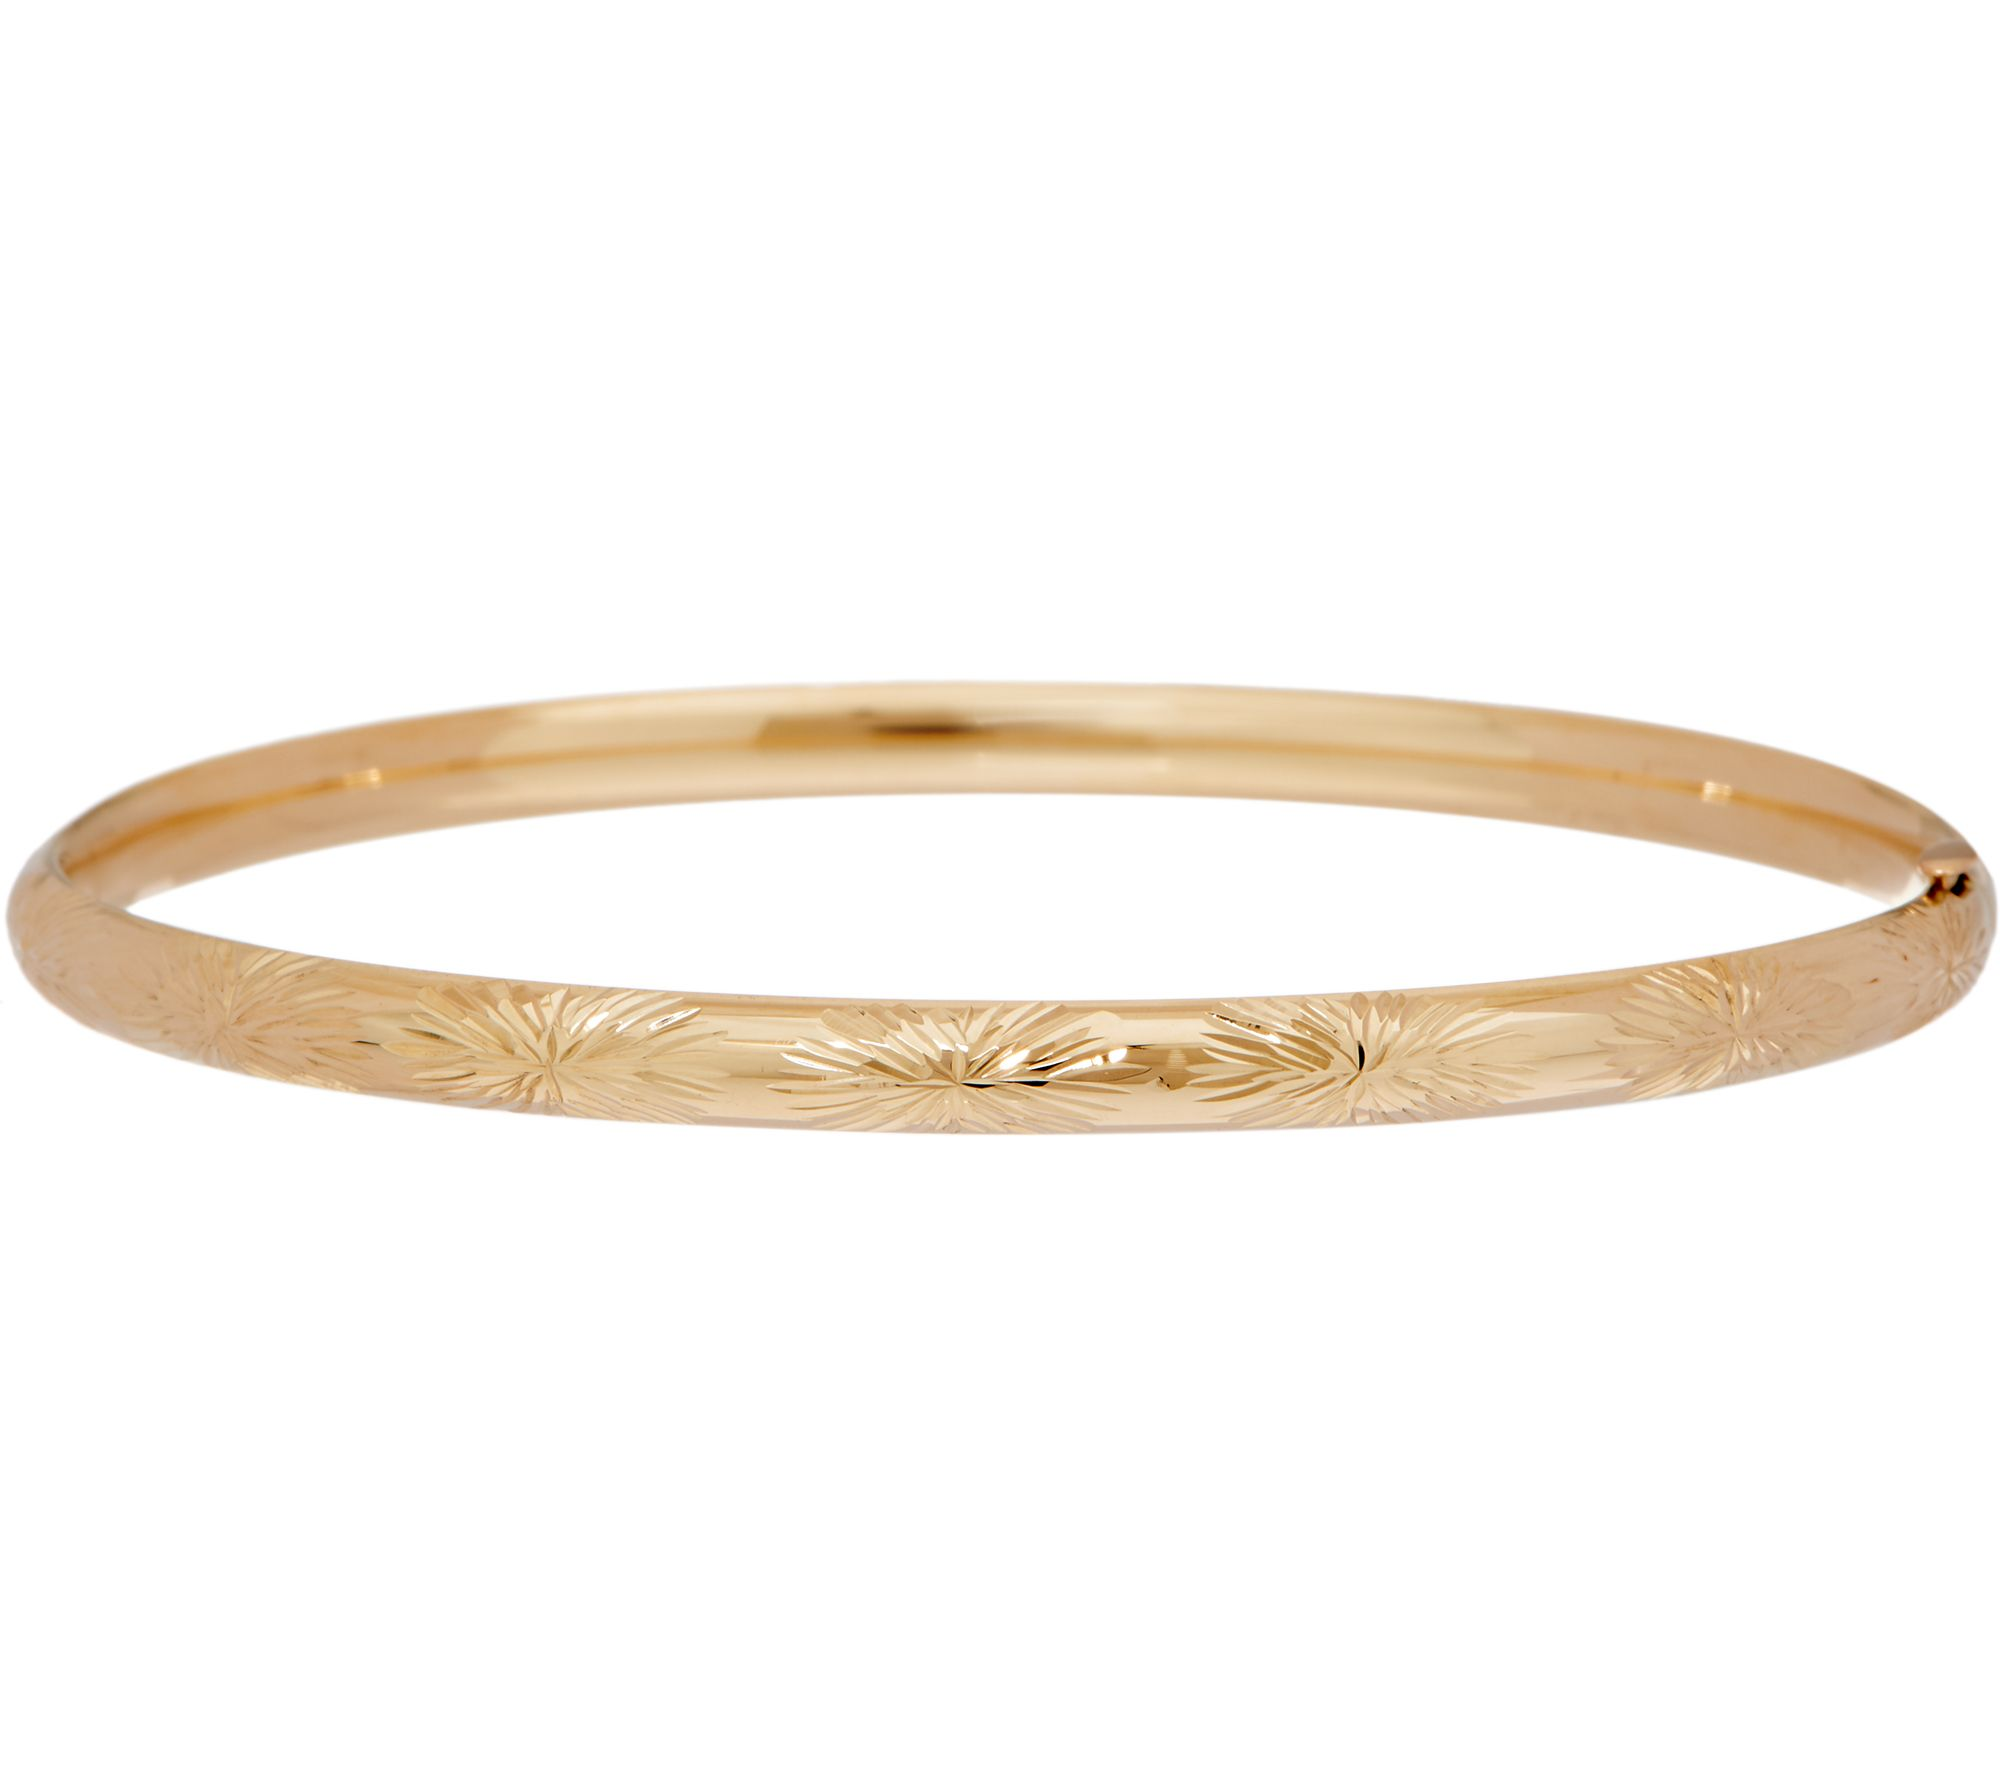 polished yellow dp solid jewelry gold com bangle bangles amazon bracelet